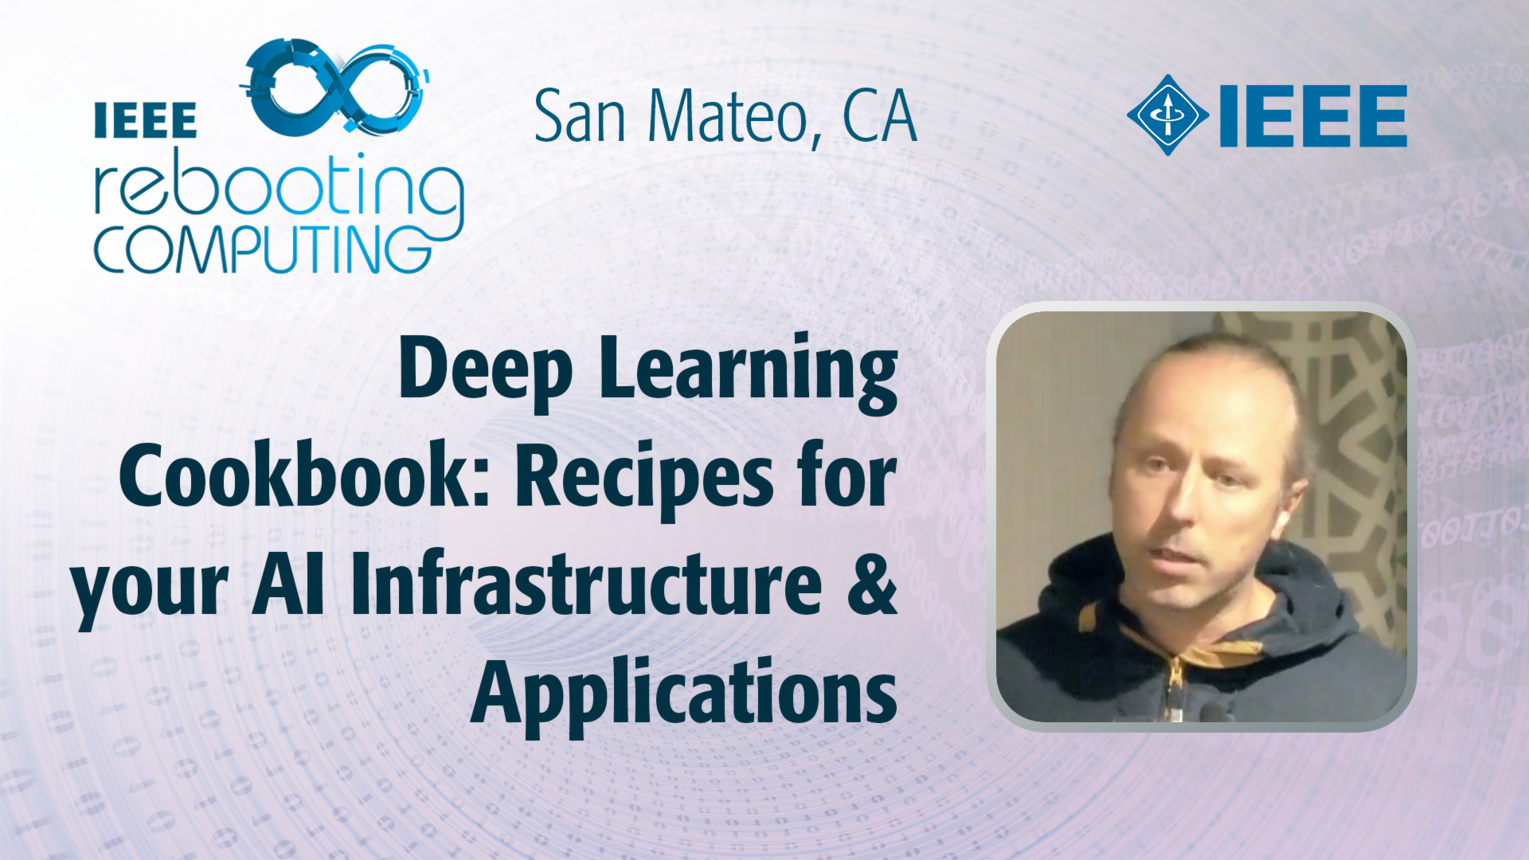 Deep Learning Cookbook - Sergey Serebryakov - ICRC San Mateo, 2019